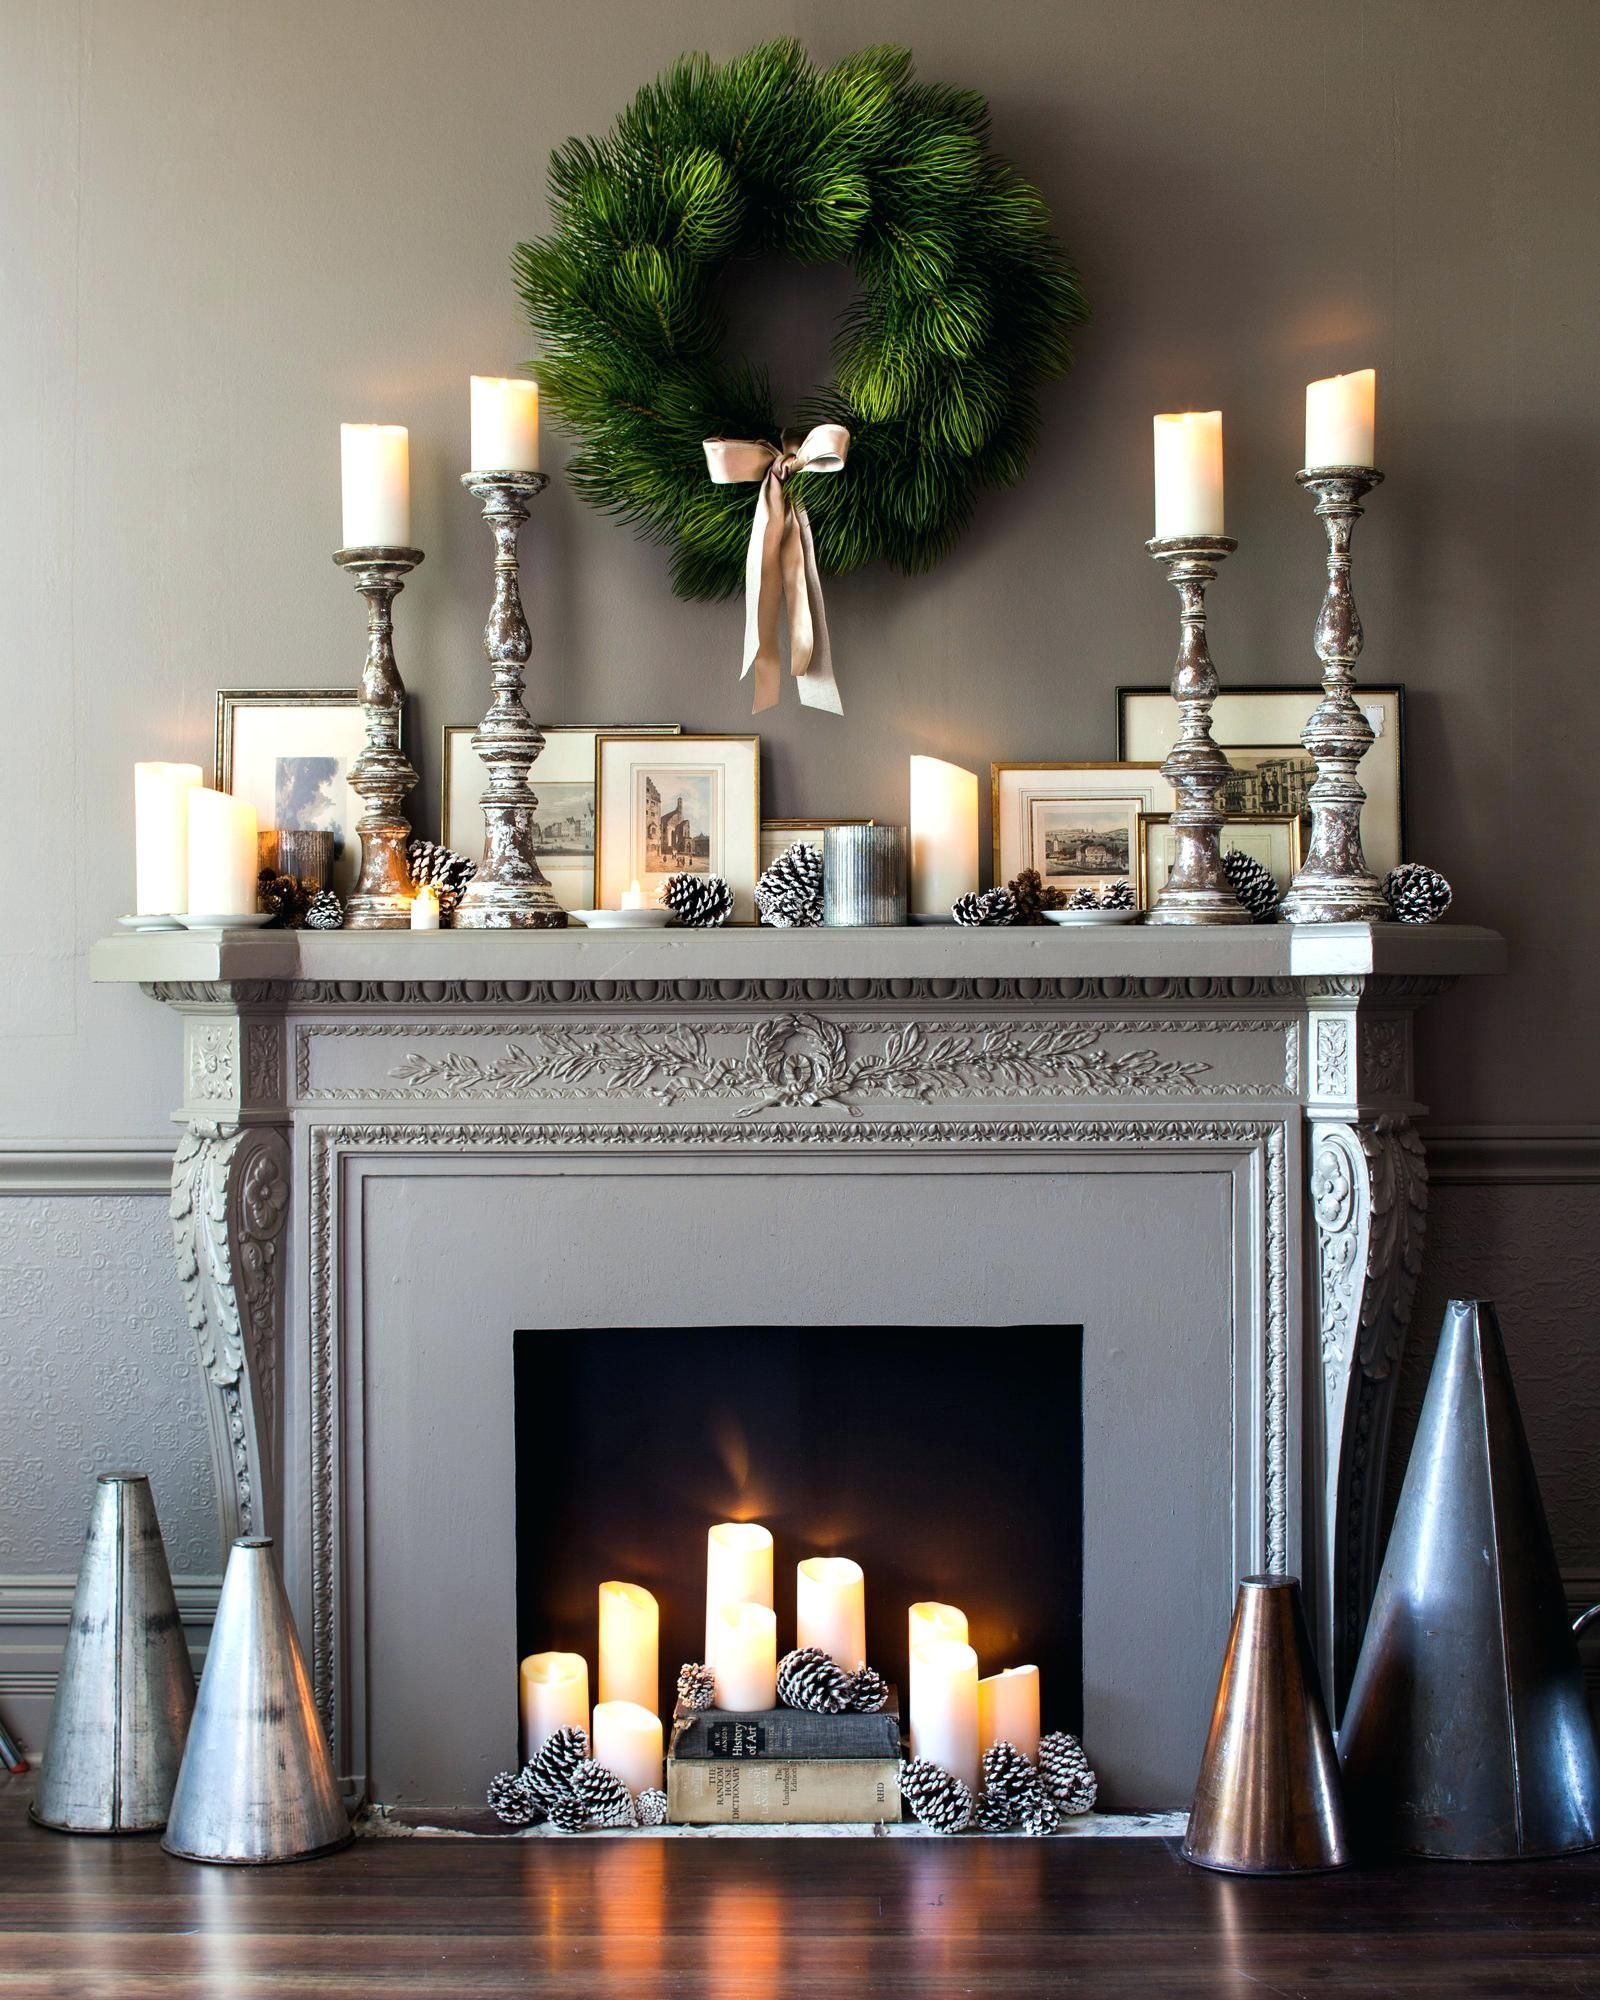 candles for fireplace hearth on pillar candle holders for fireplace fireplace decor candles candles in fireplace fireplace mantel decor pinterest